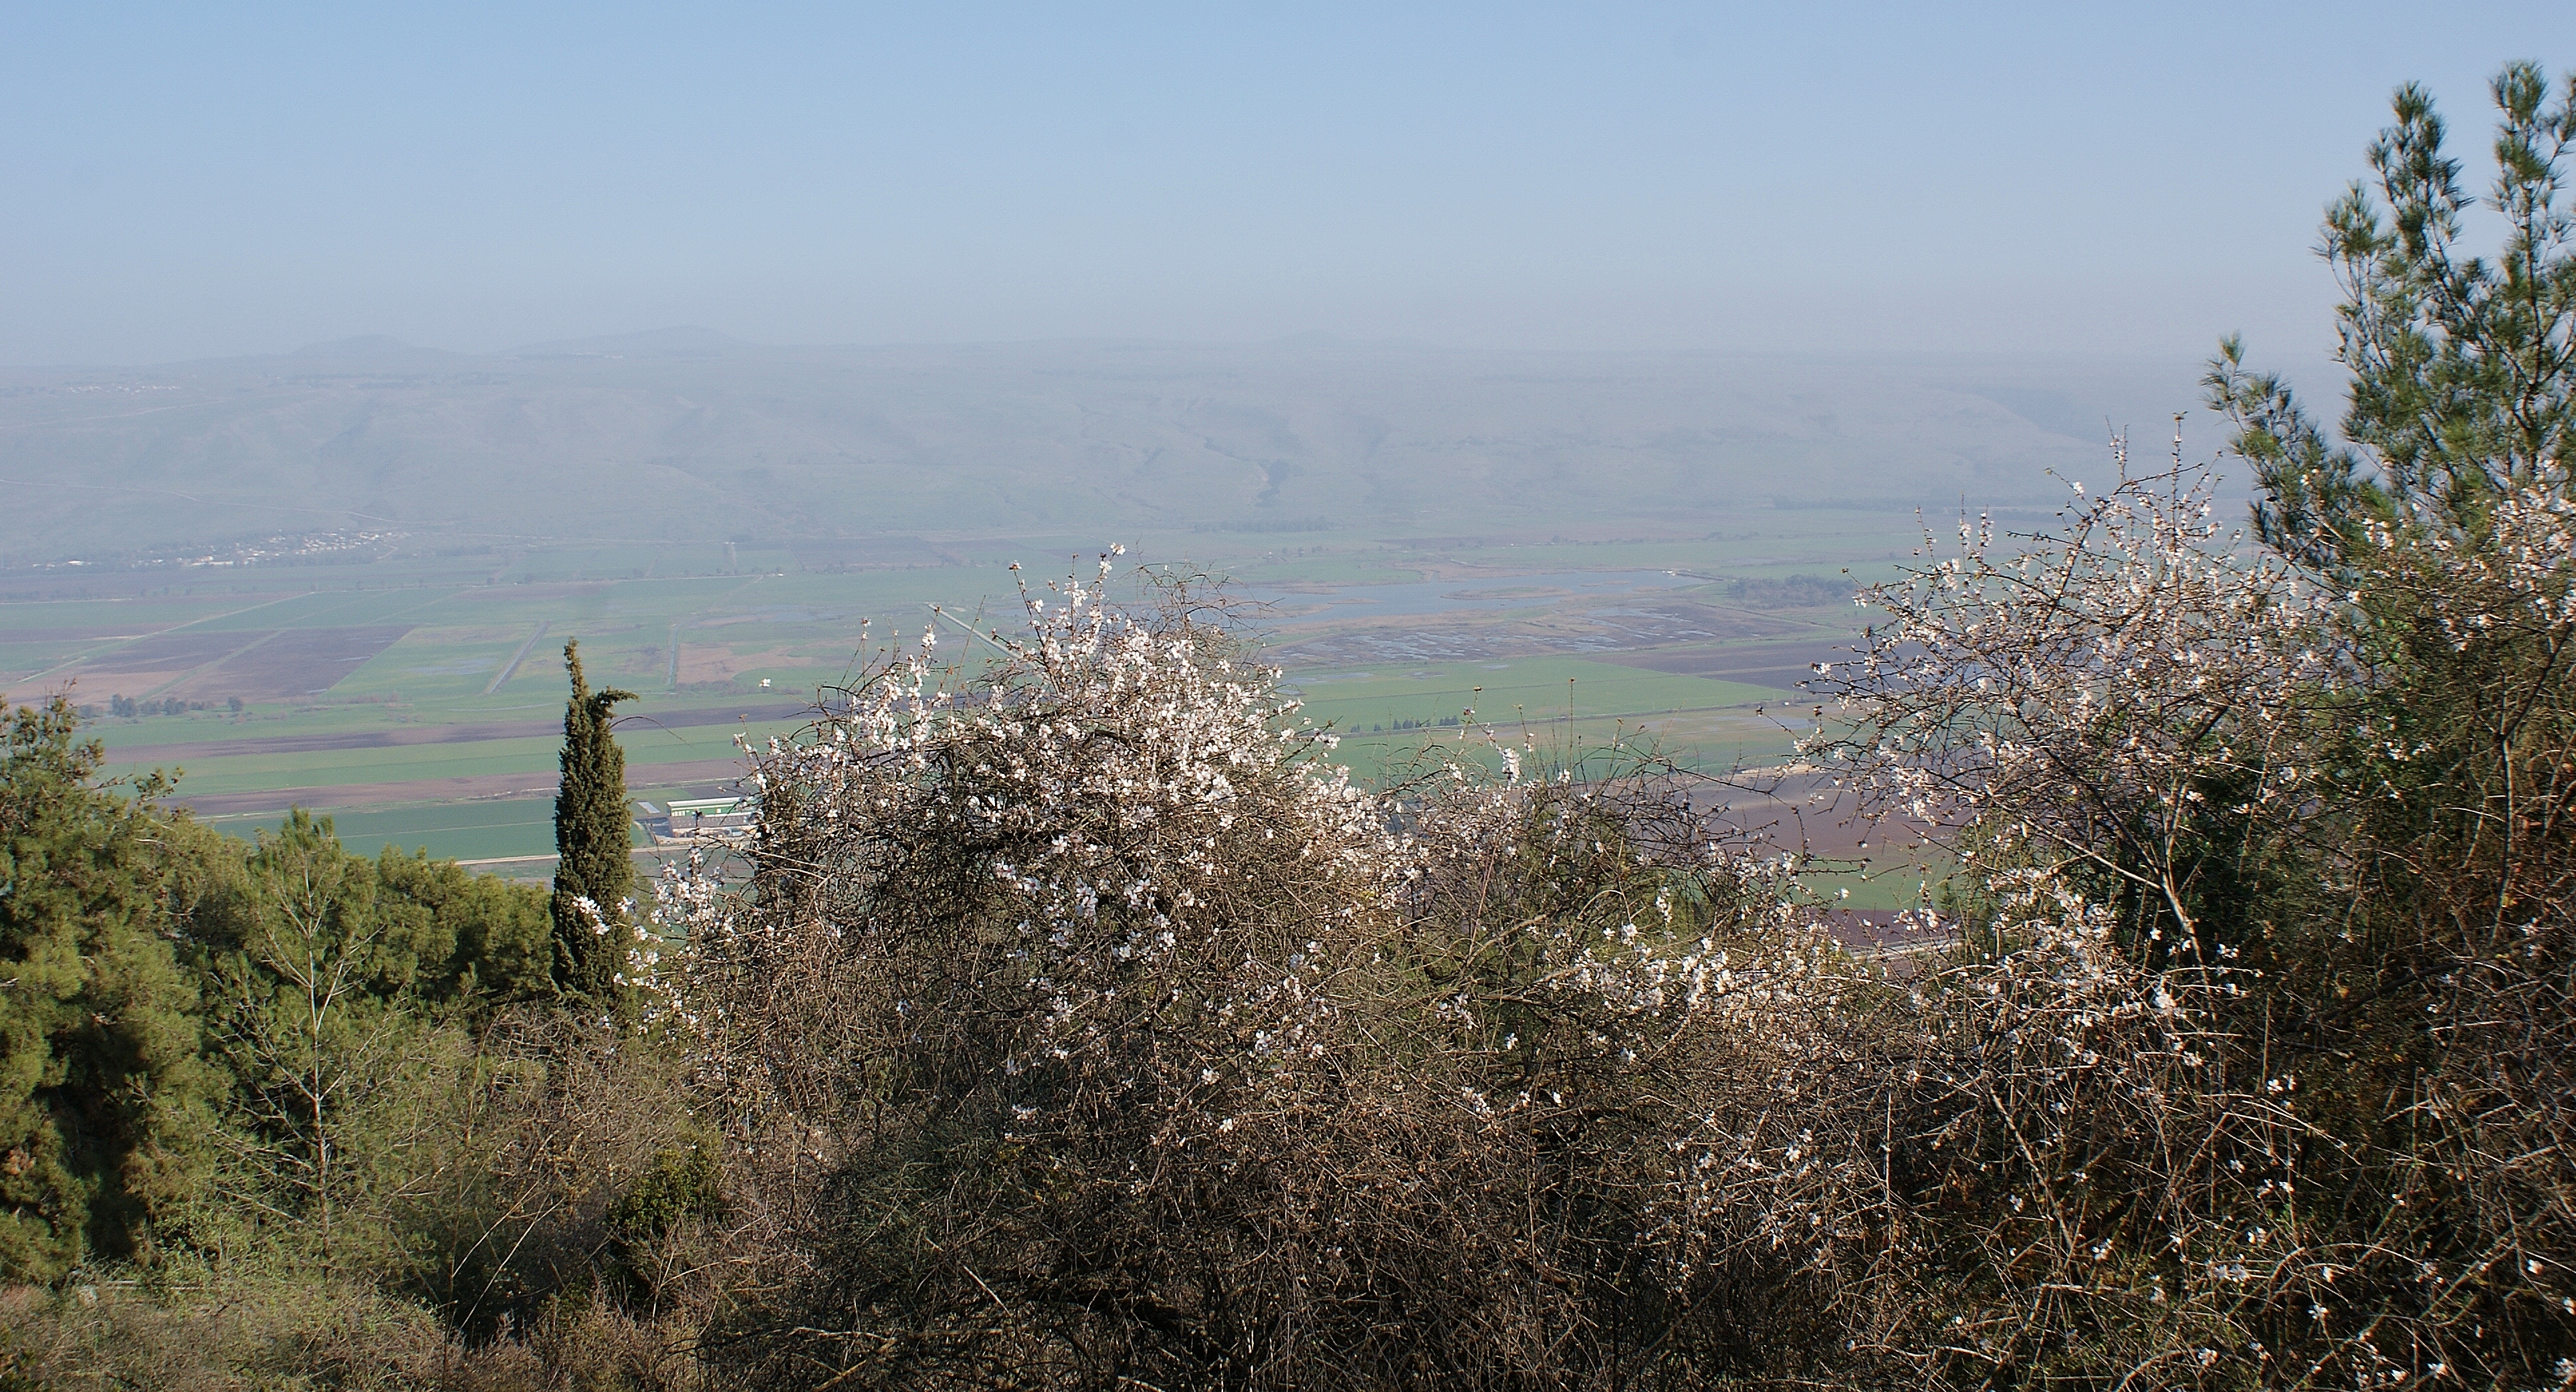 Postcard from Israel – Almond blossom